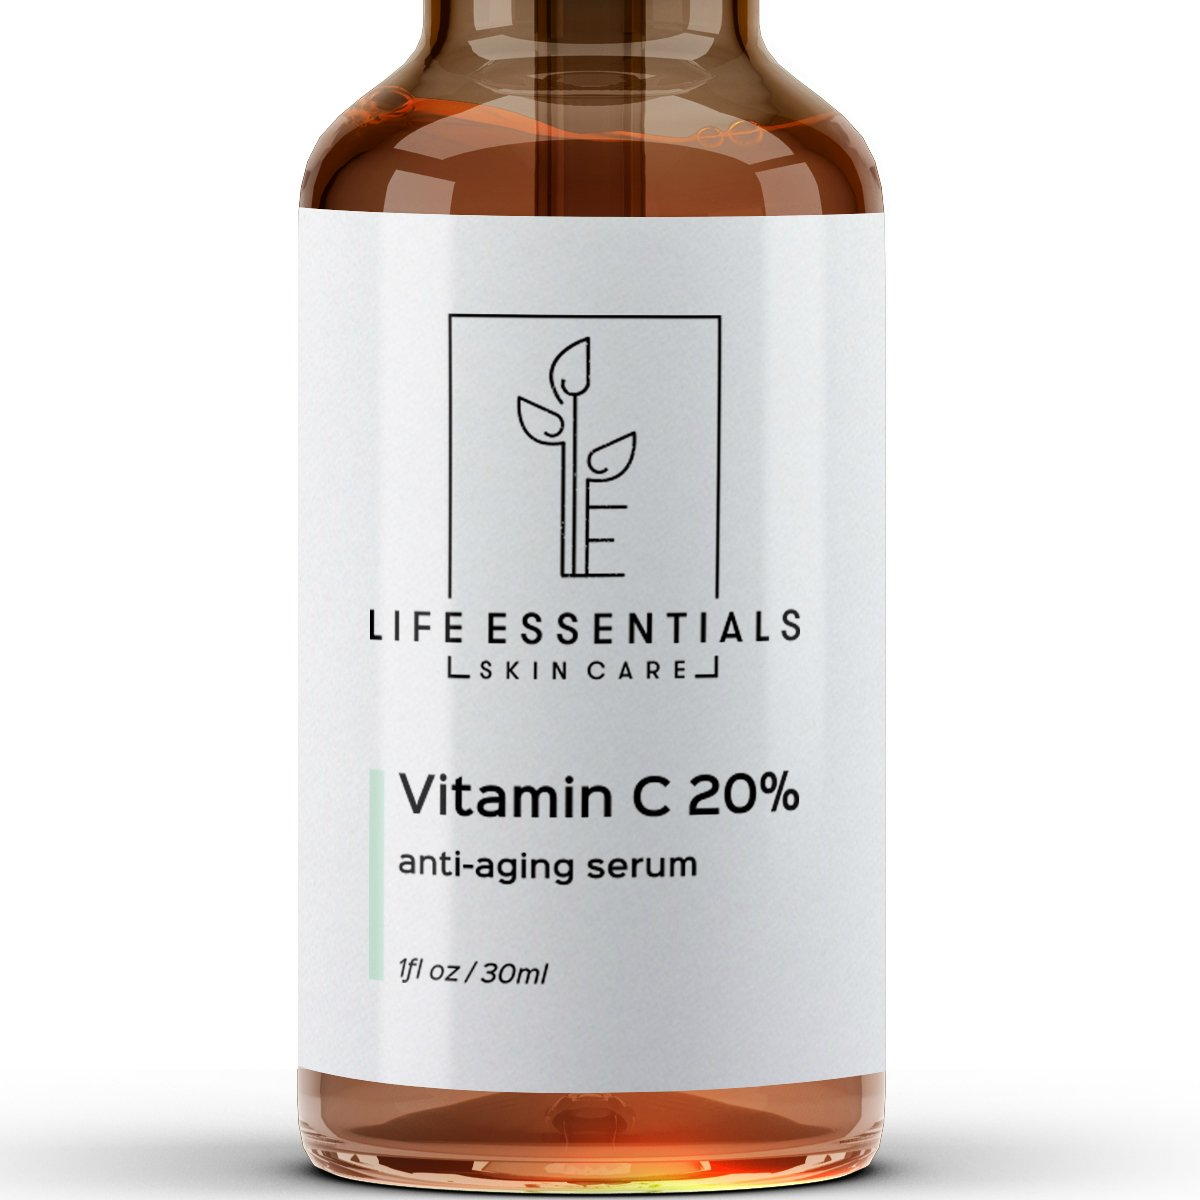 Vitamin C Serum for Face 20% - Hyaluronic Acid - Anti Wrinkle - Anti Aging Serum - Fades Dark Spots - Repairs Skin - Organic Ingredients Life Essentials Skin Care LE-101